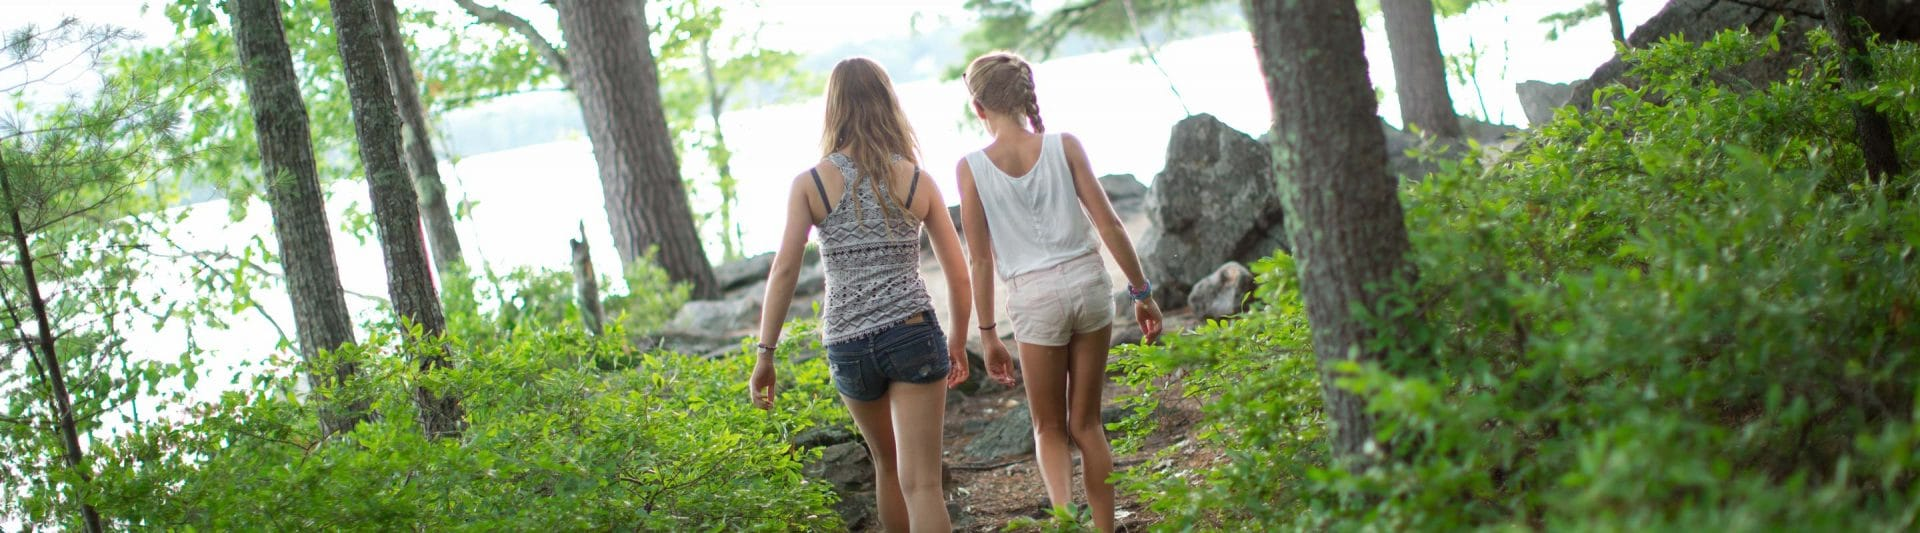 two girls walking down a path in the woods